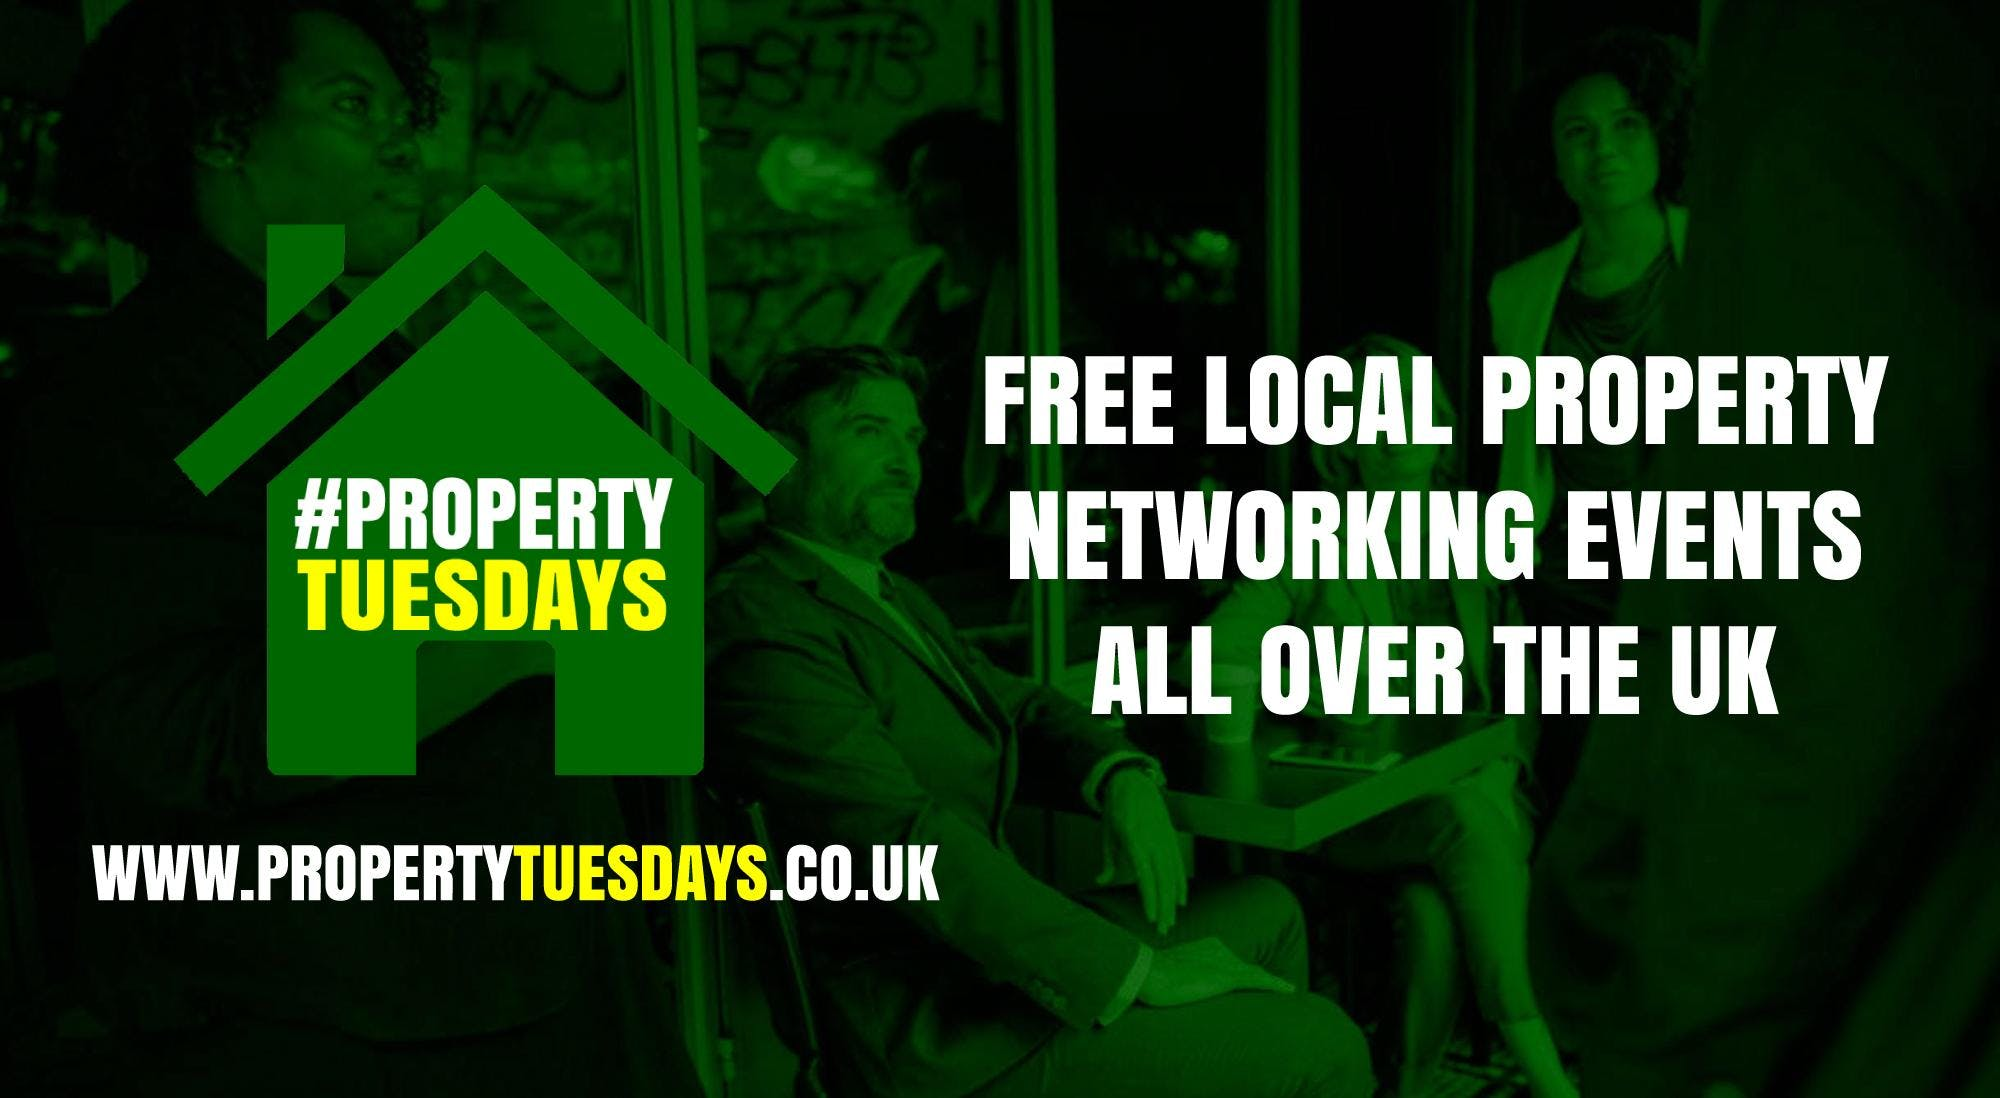 Property Tuesdays! Free property networking event in Urmston